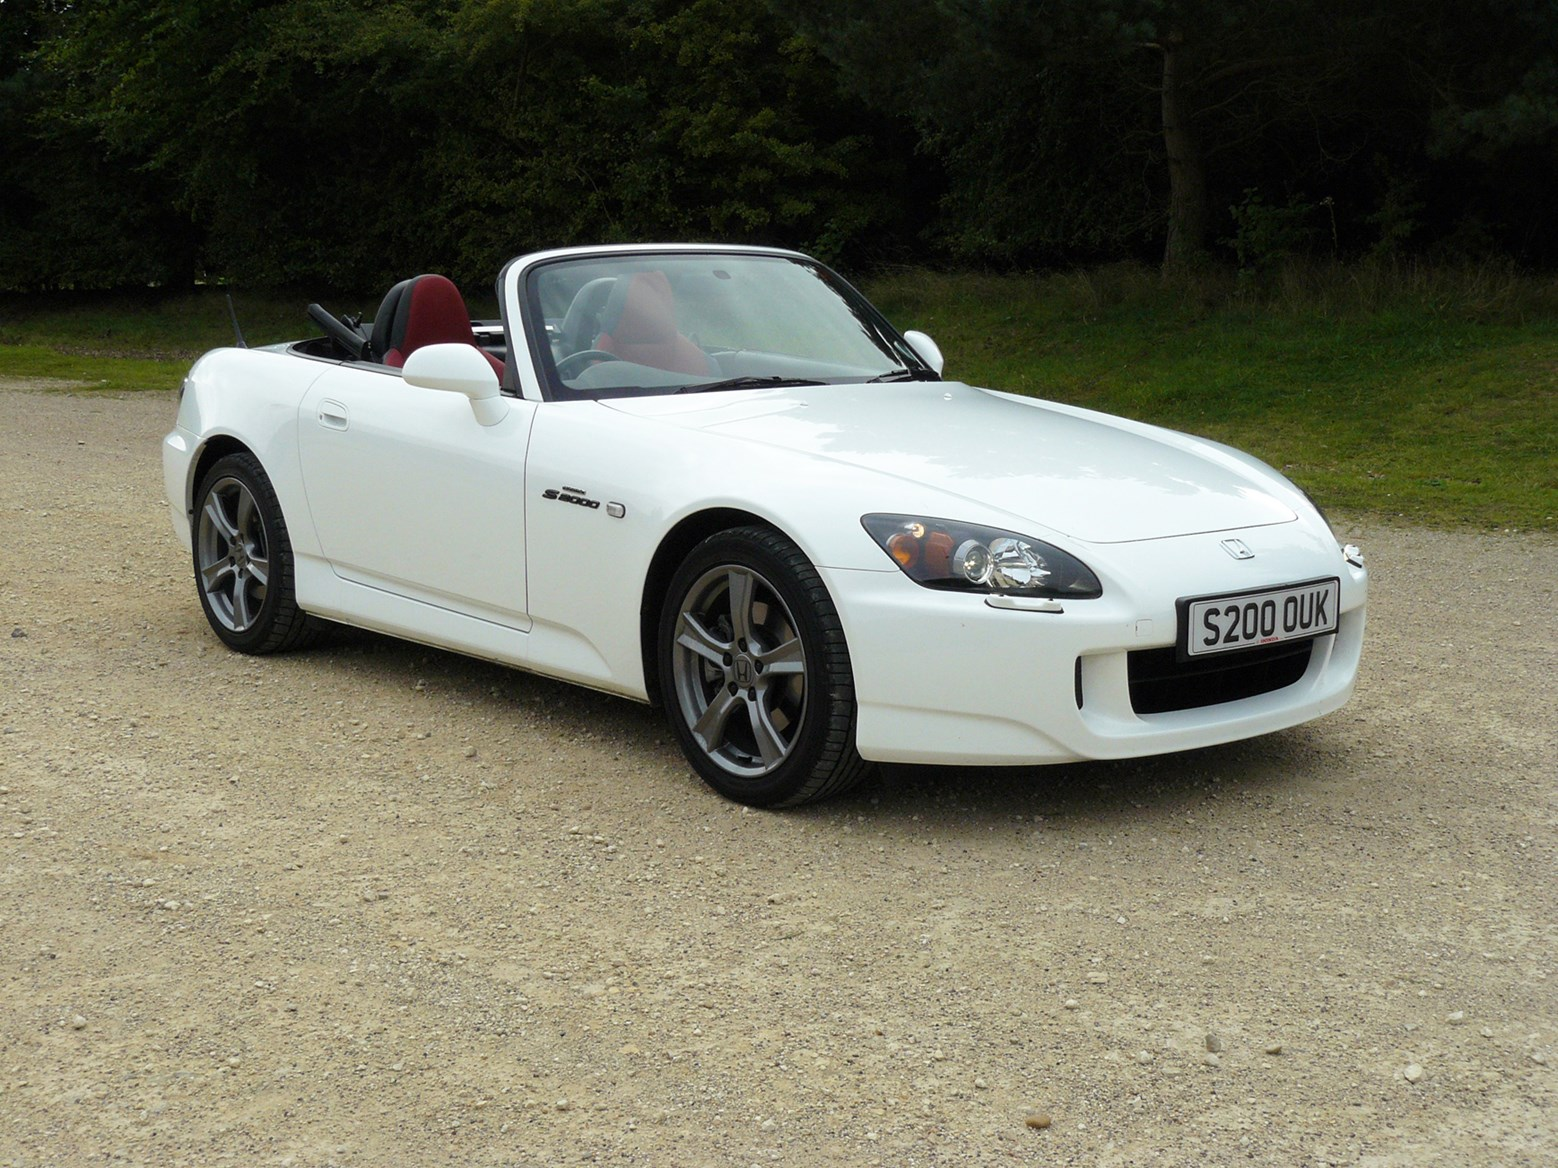 Honda S2000 Roadster 1999 2009 Features Equipment And Accessories Parkers